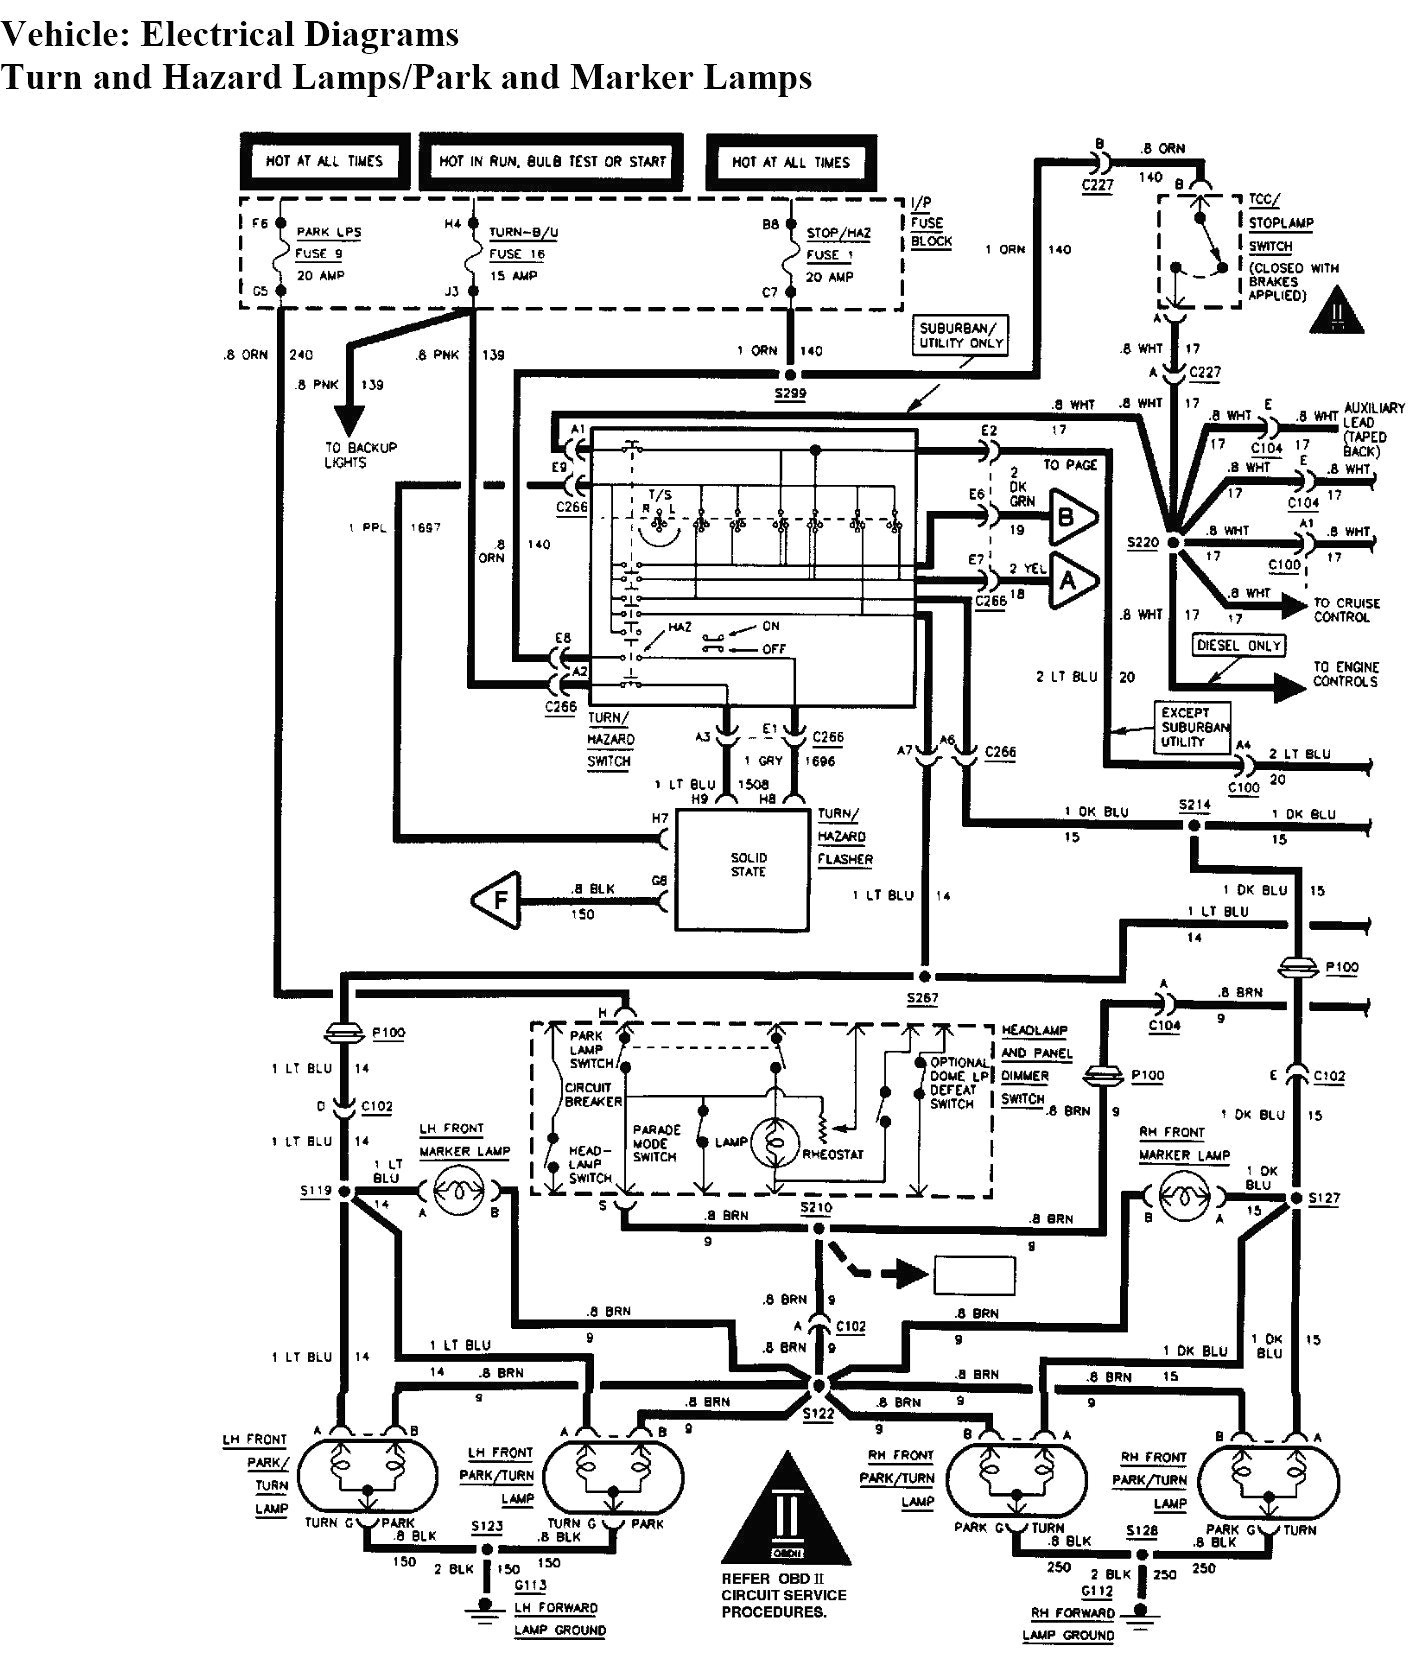 2000 camry tail light wiring diagram